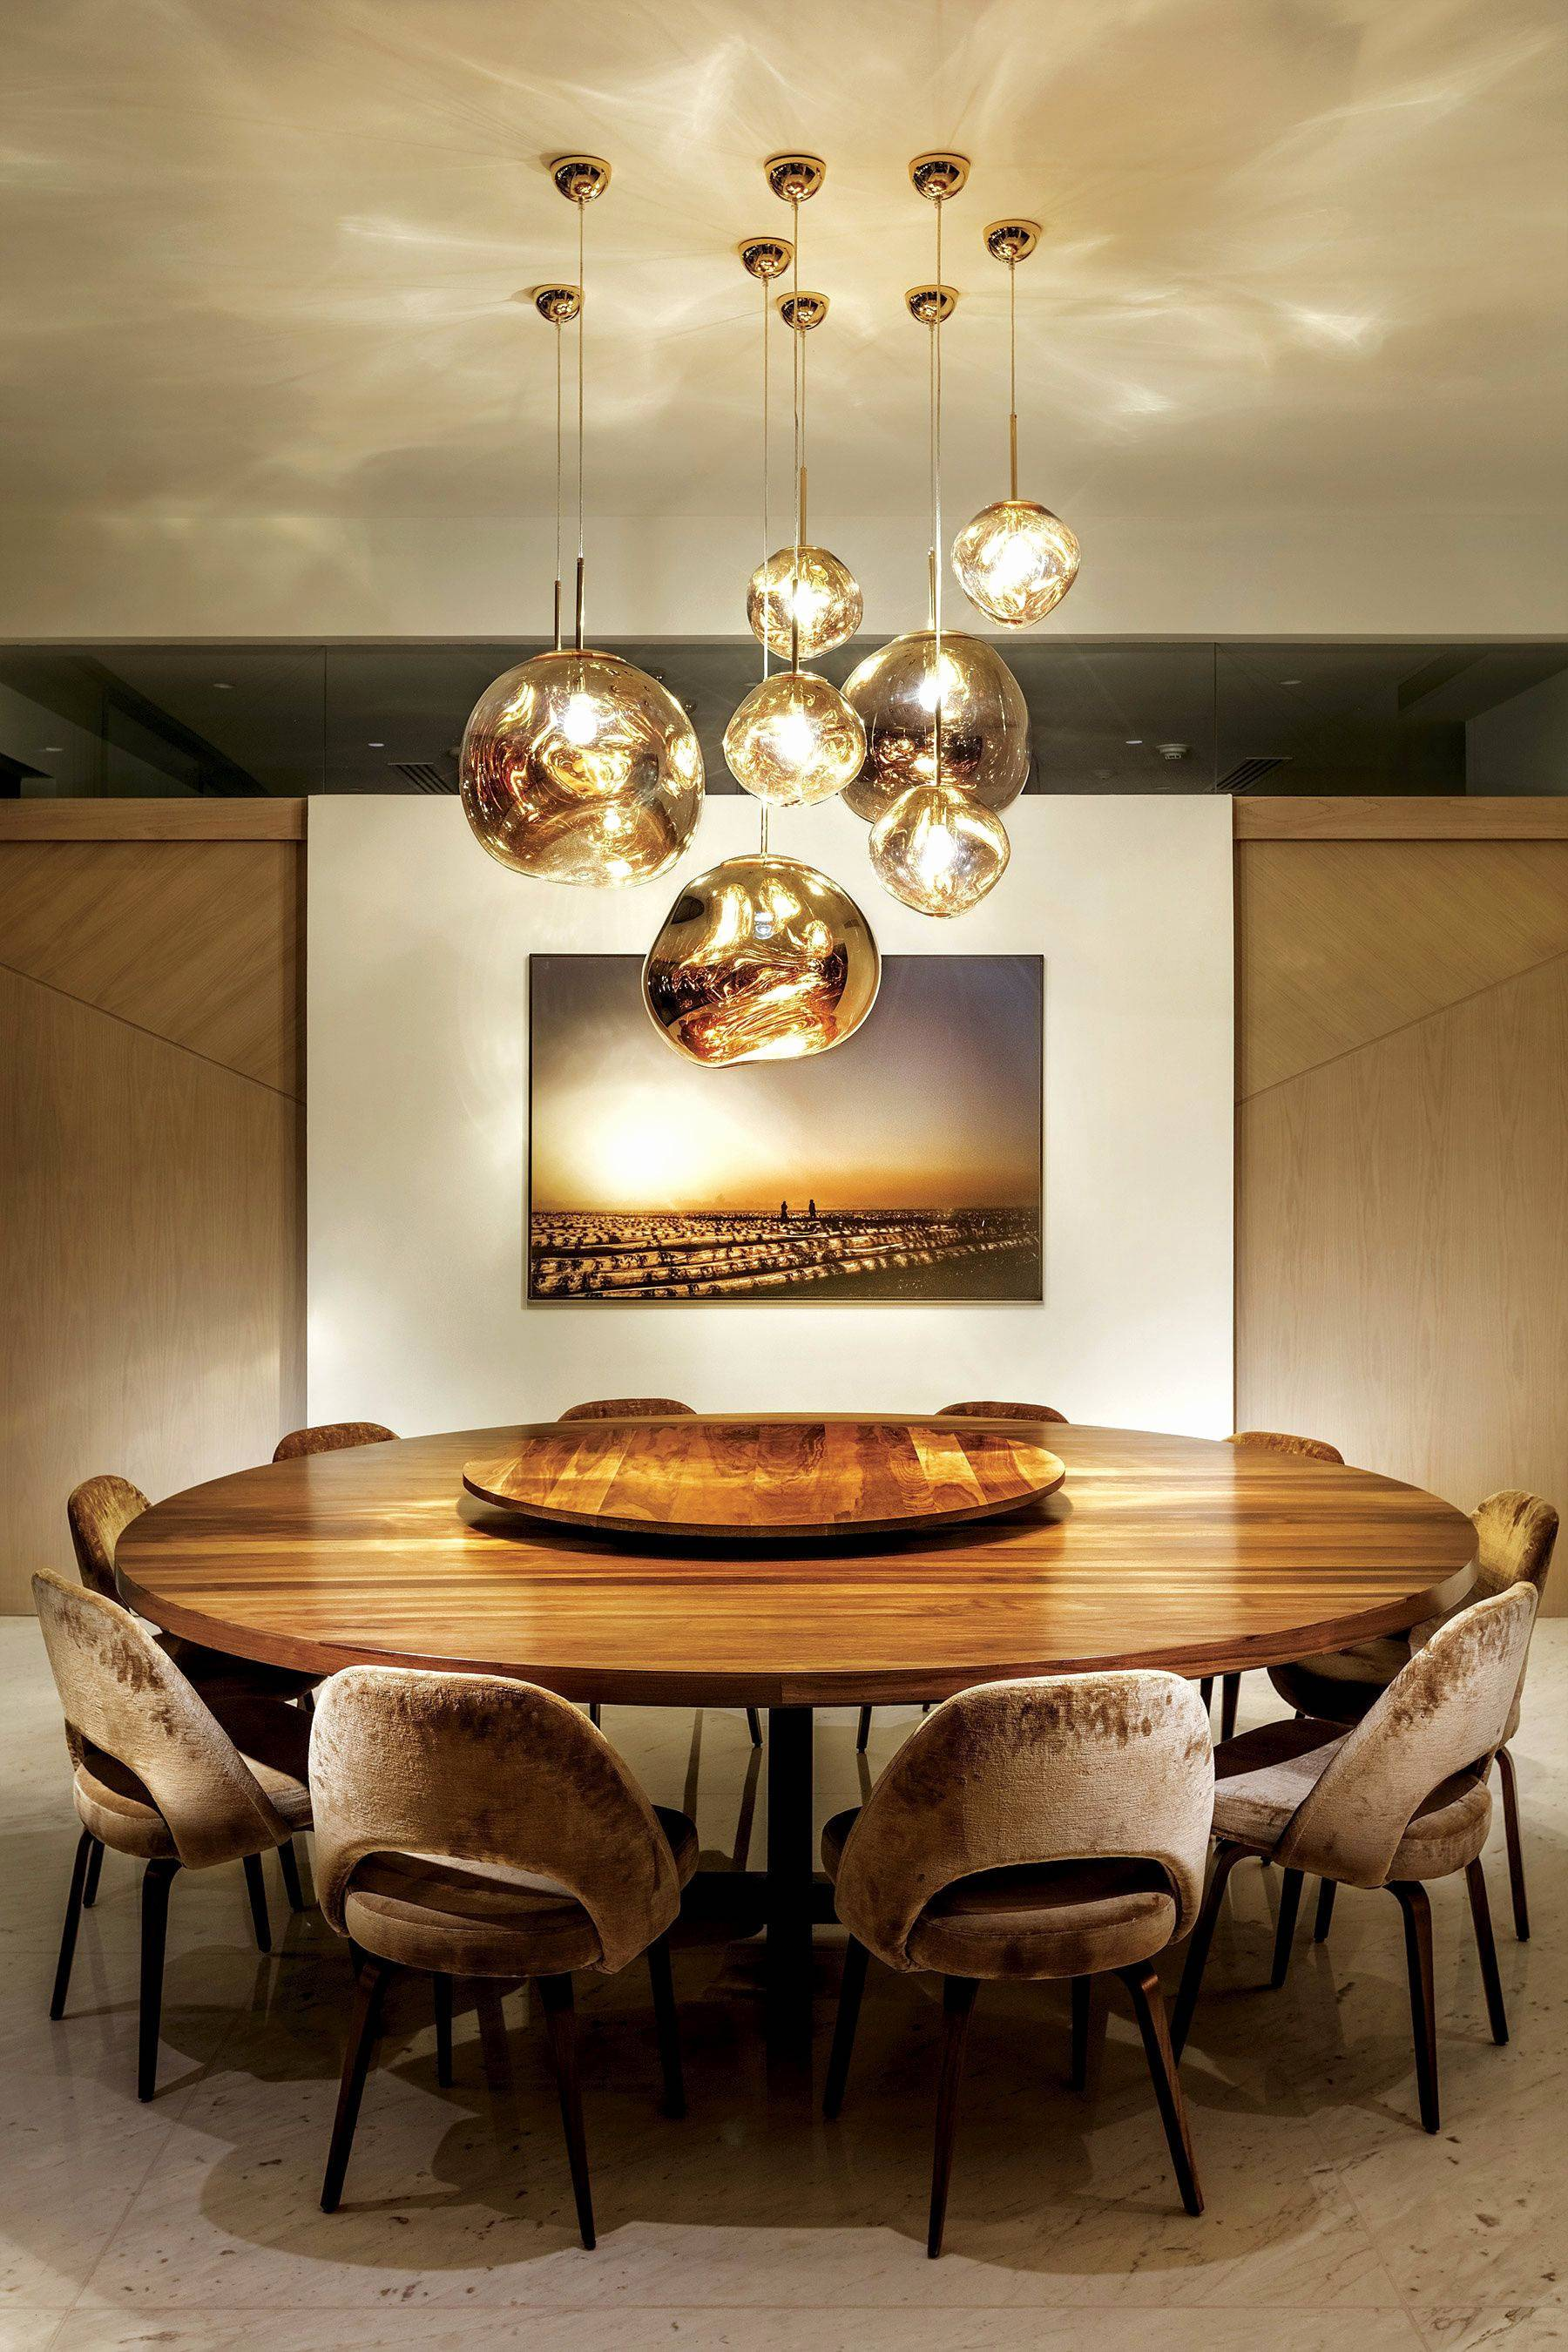 pendant lighting vancouver lovely appealing living room light stand at outdoor led light inspirational of pendant lighting vancouver